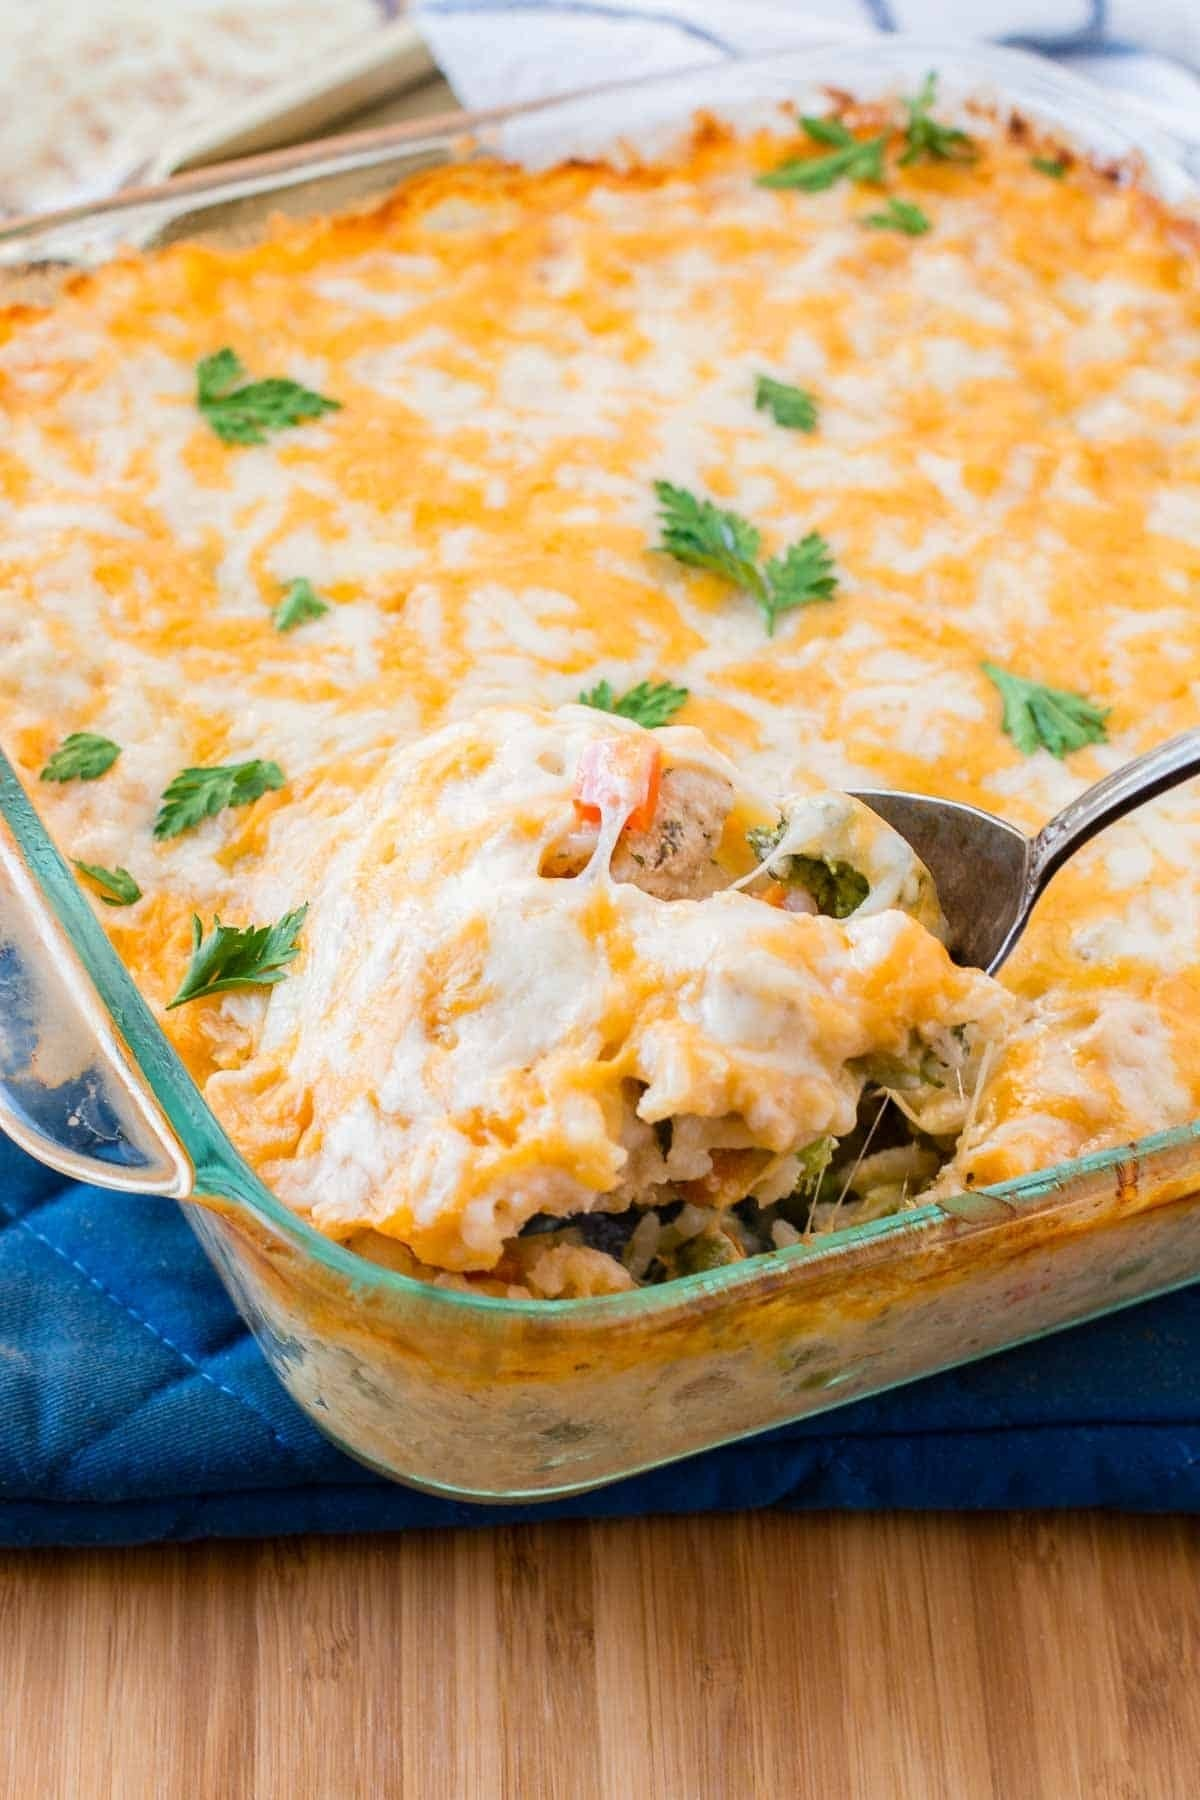 10 Attractive Easy Dinner Ideas With Chicken cheesy chicken and rice casserole oh sweet basil 9 2020